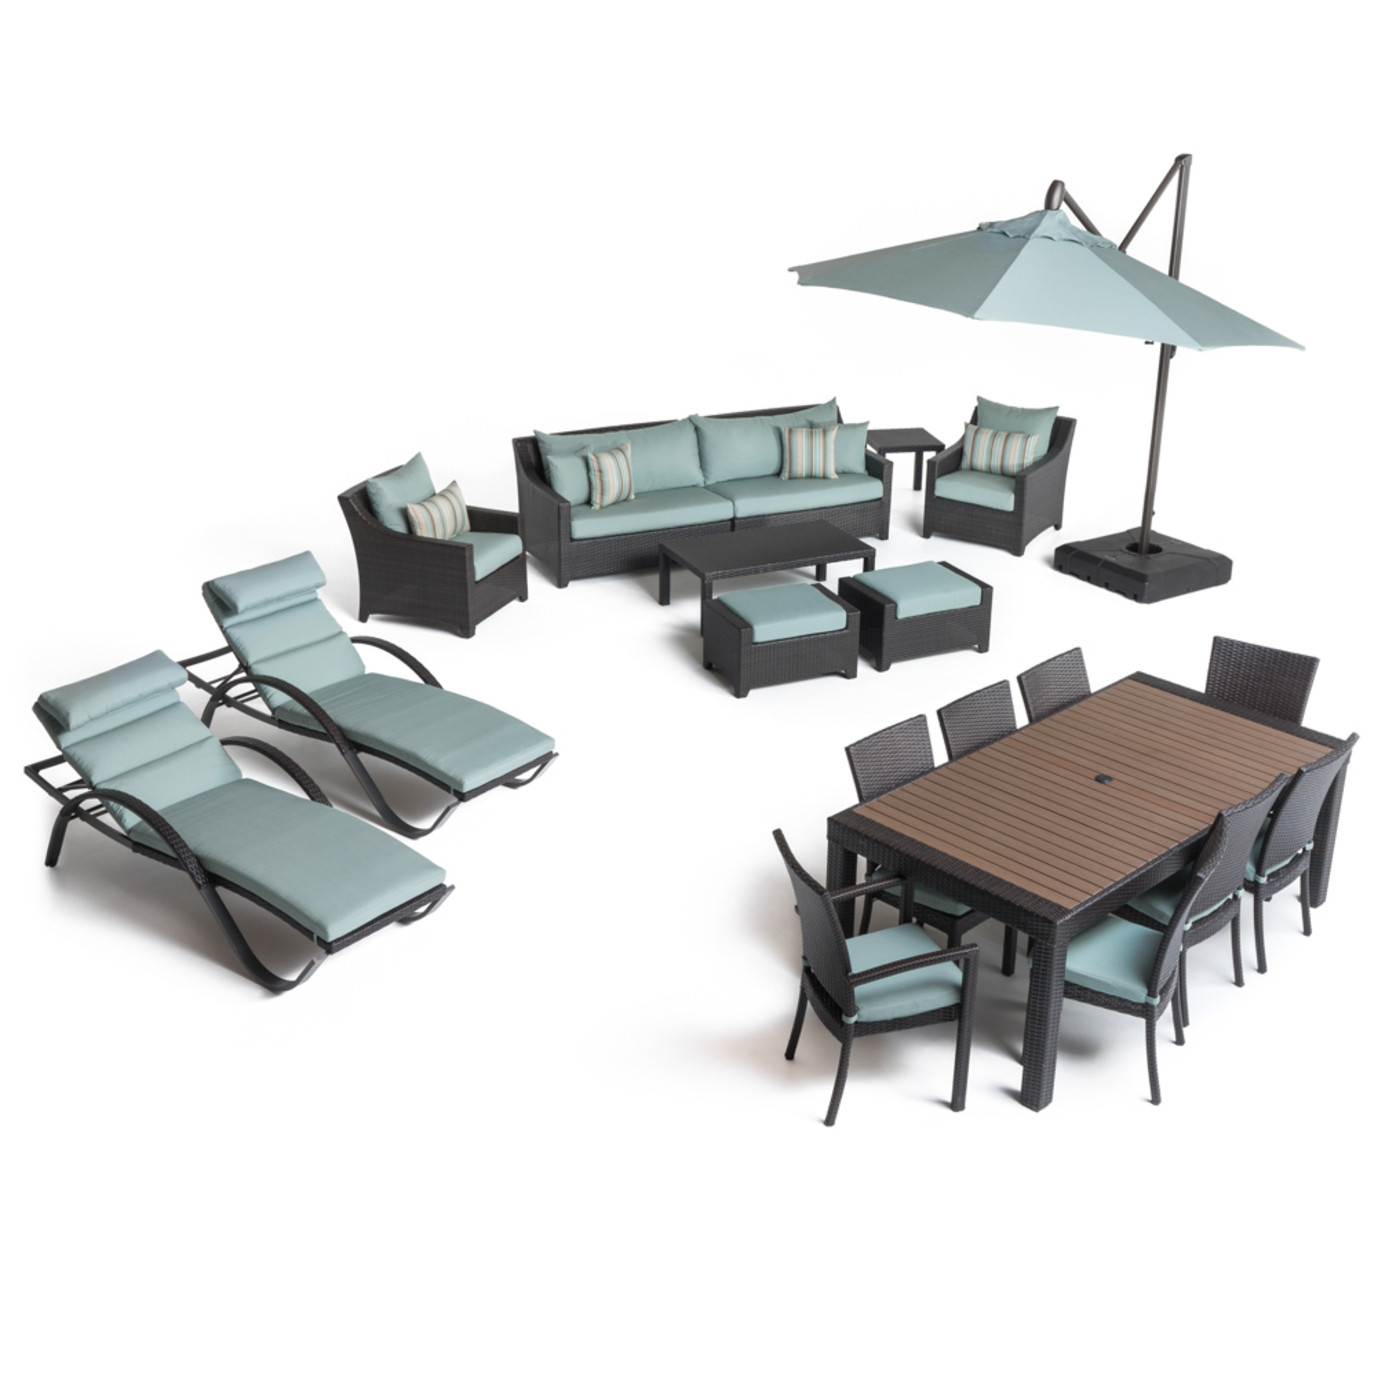 Deco™ 20 Piece Outdoor Estate Set - Bliss Blue